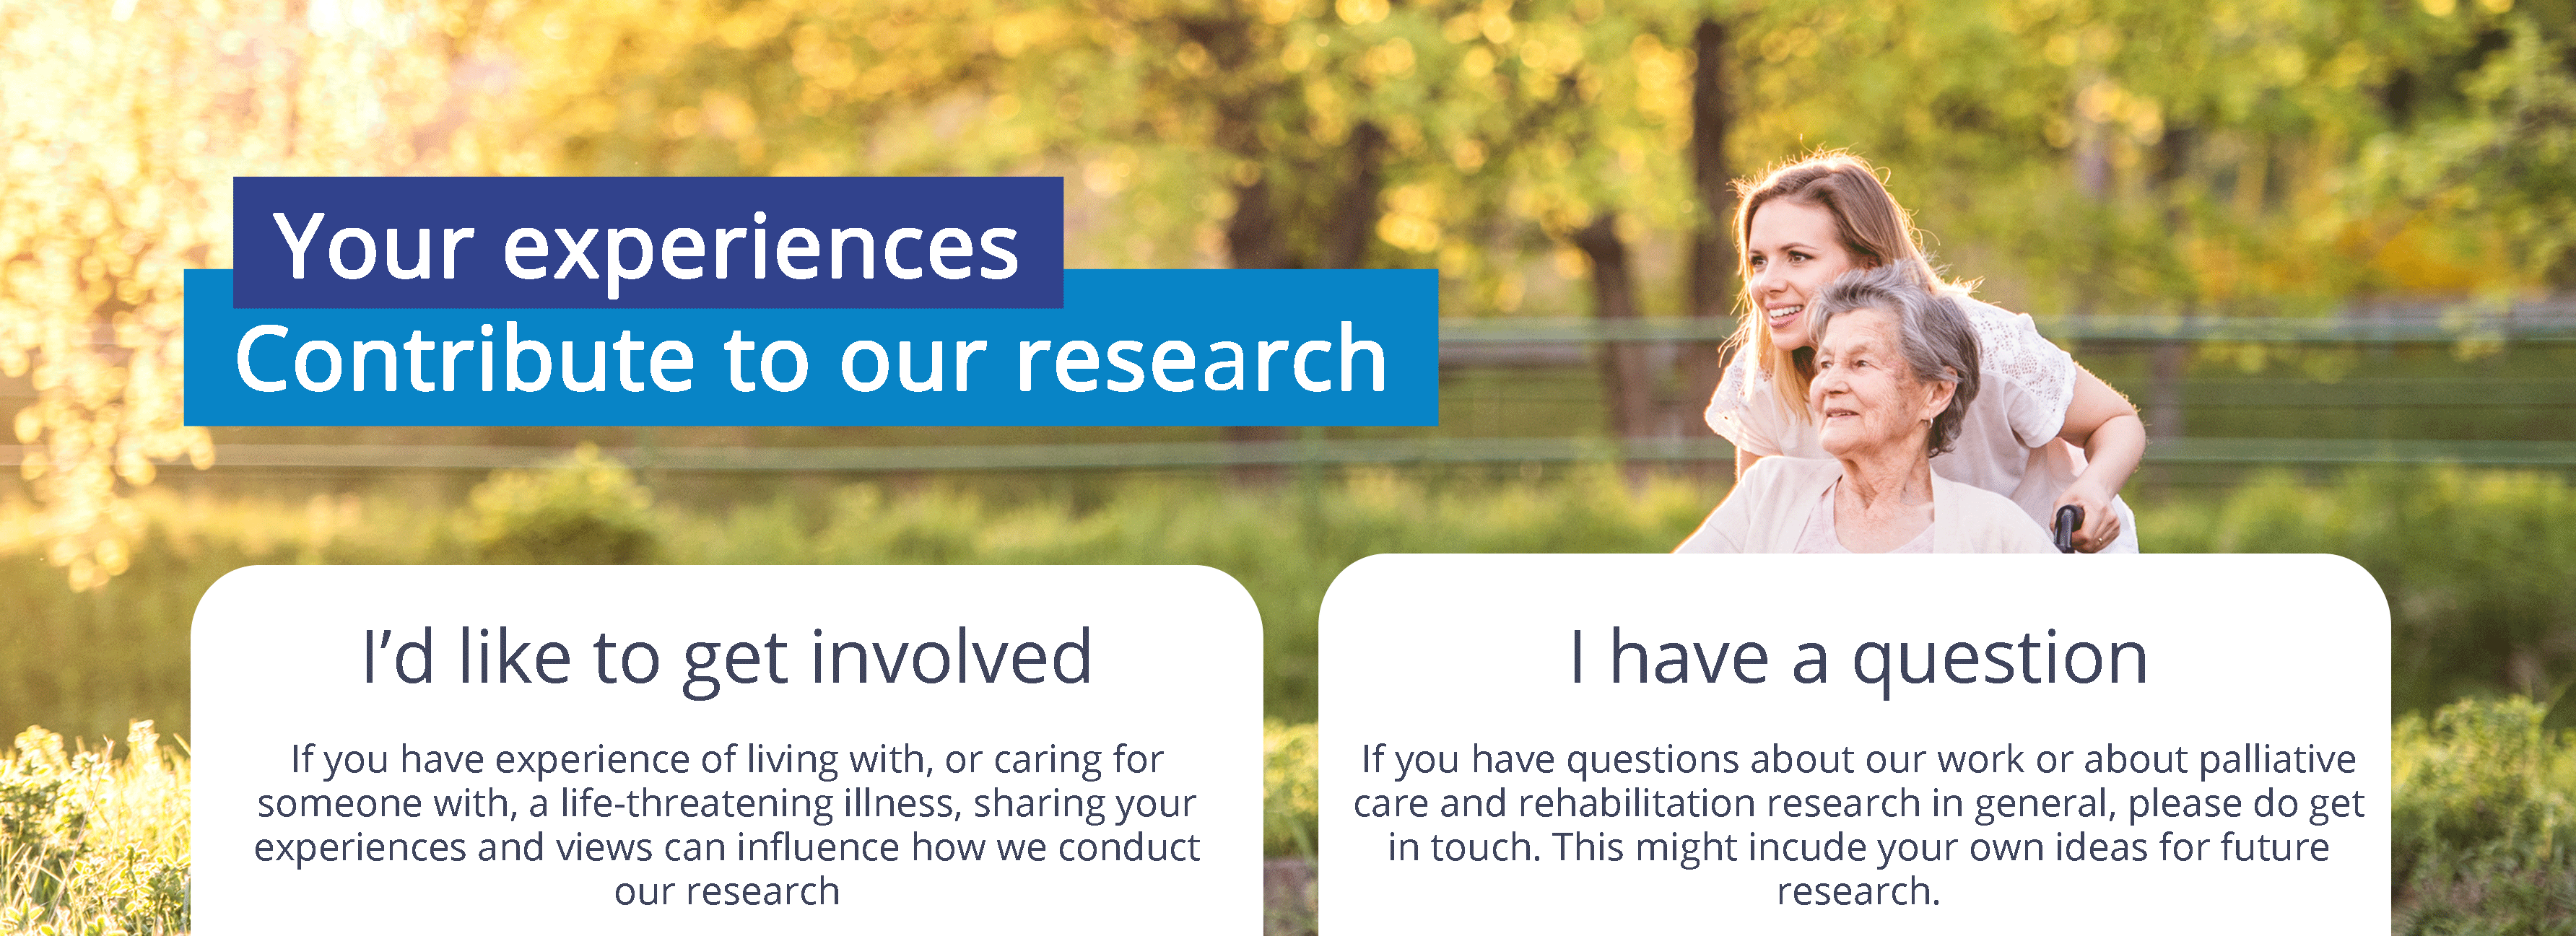 banner: your experiences contribute to our research